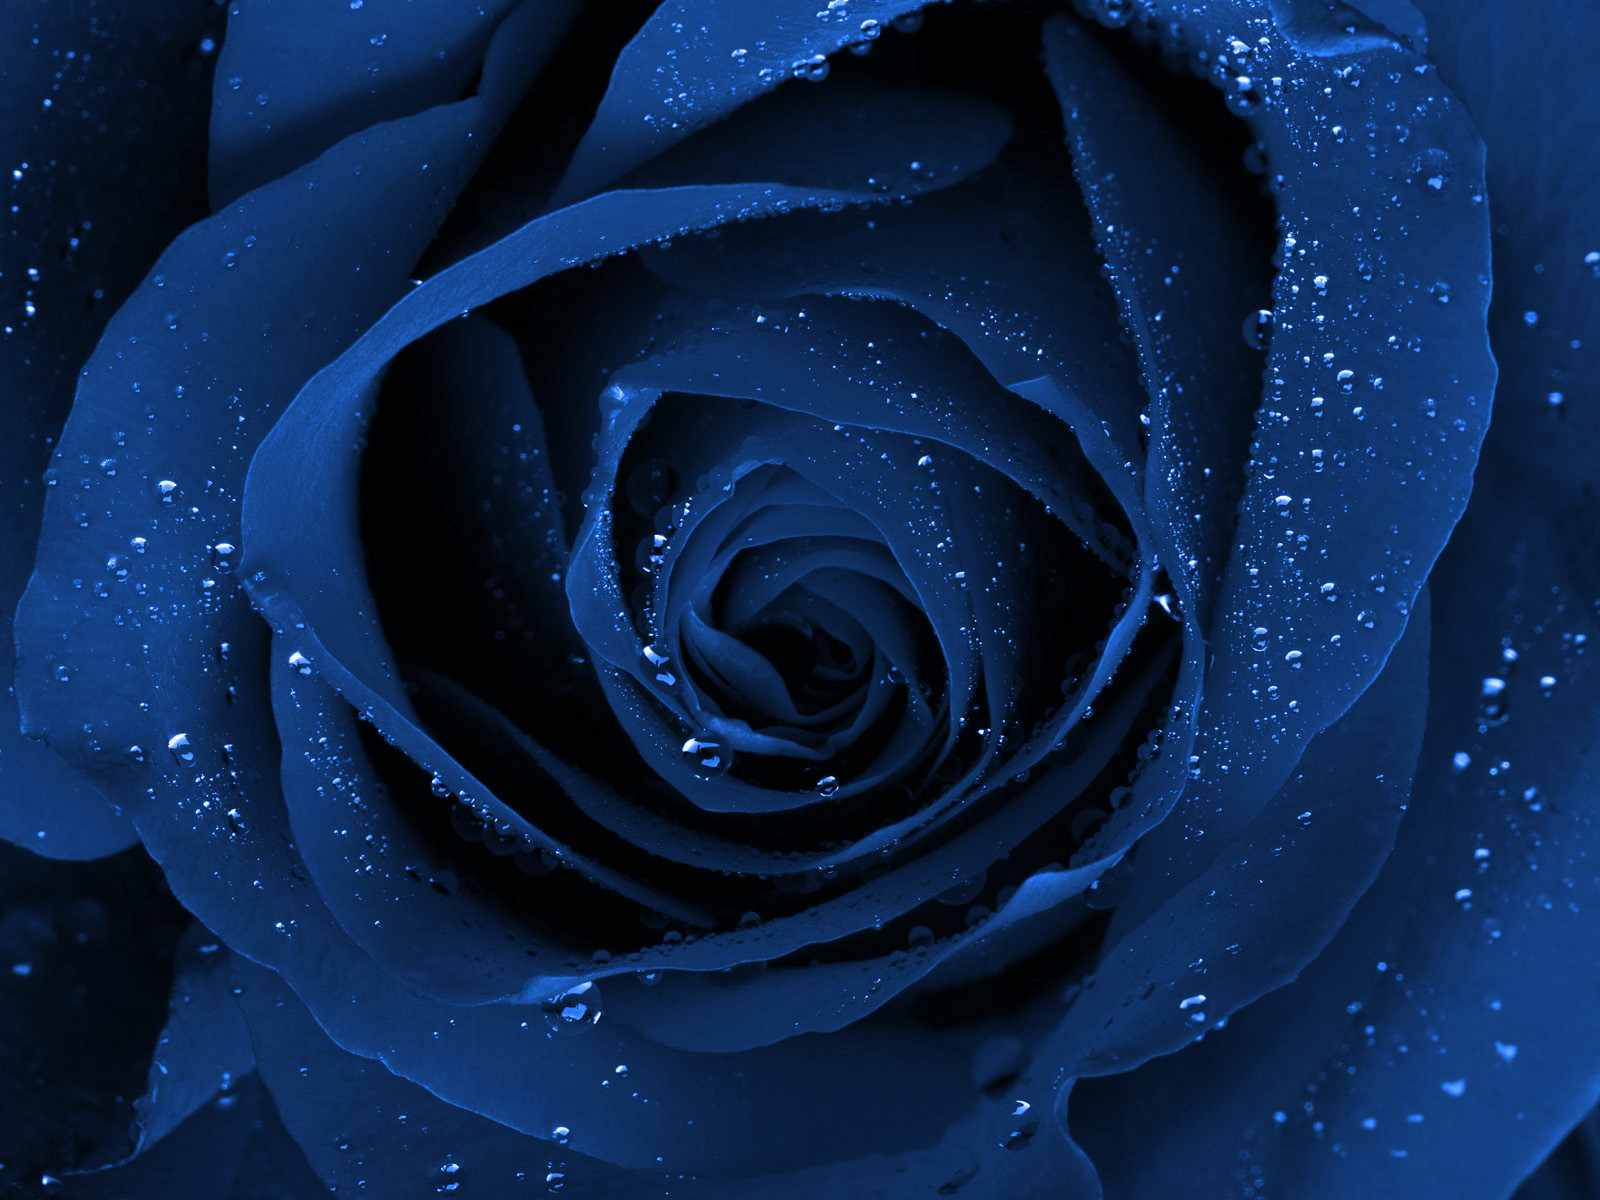 Beautiful Flowers Wallpaper Blue On Blue 2 Cool Hd Wallpaper